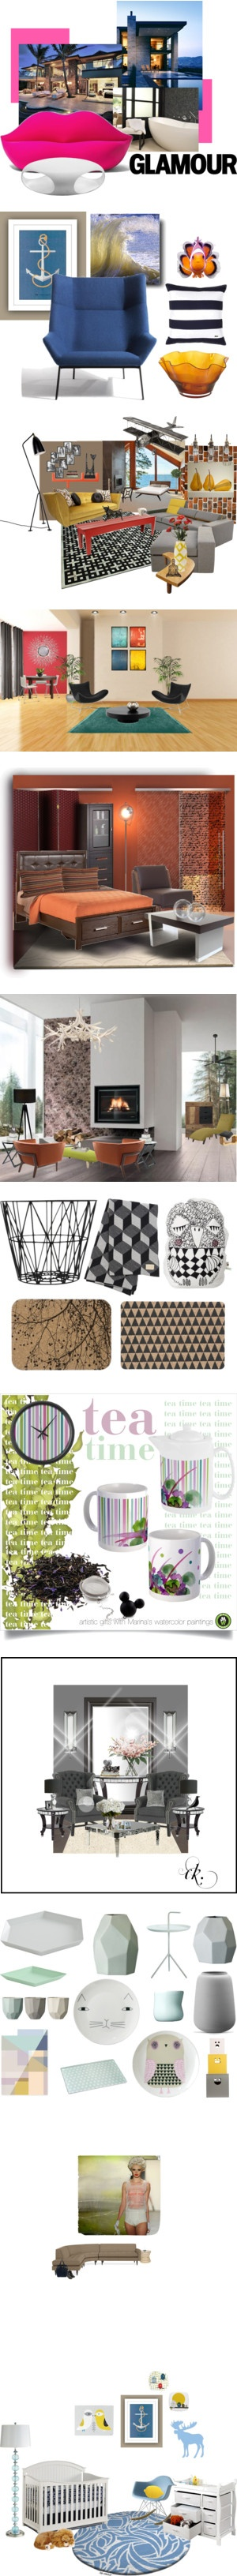 """""""Top Interior Design Sets for Feb 15th, 2013"""" by polyvore ❤ liked on Polyvore"""